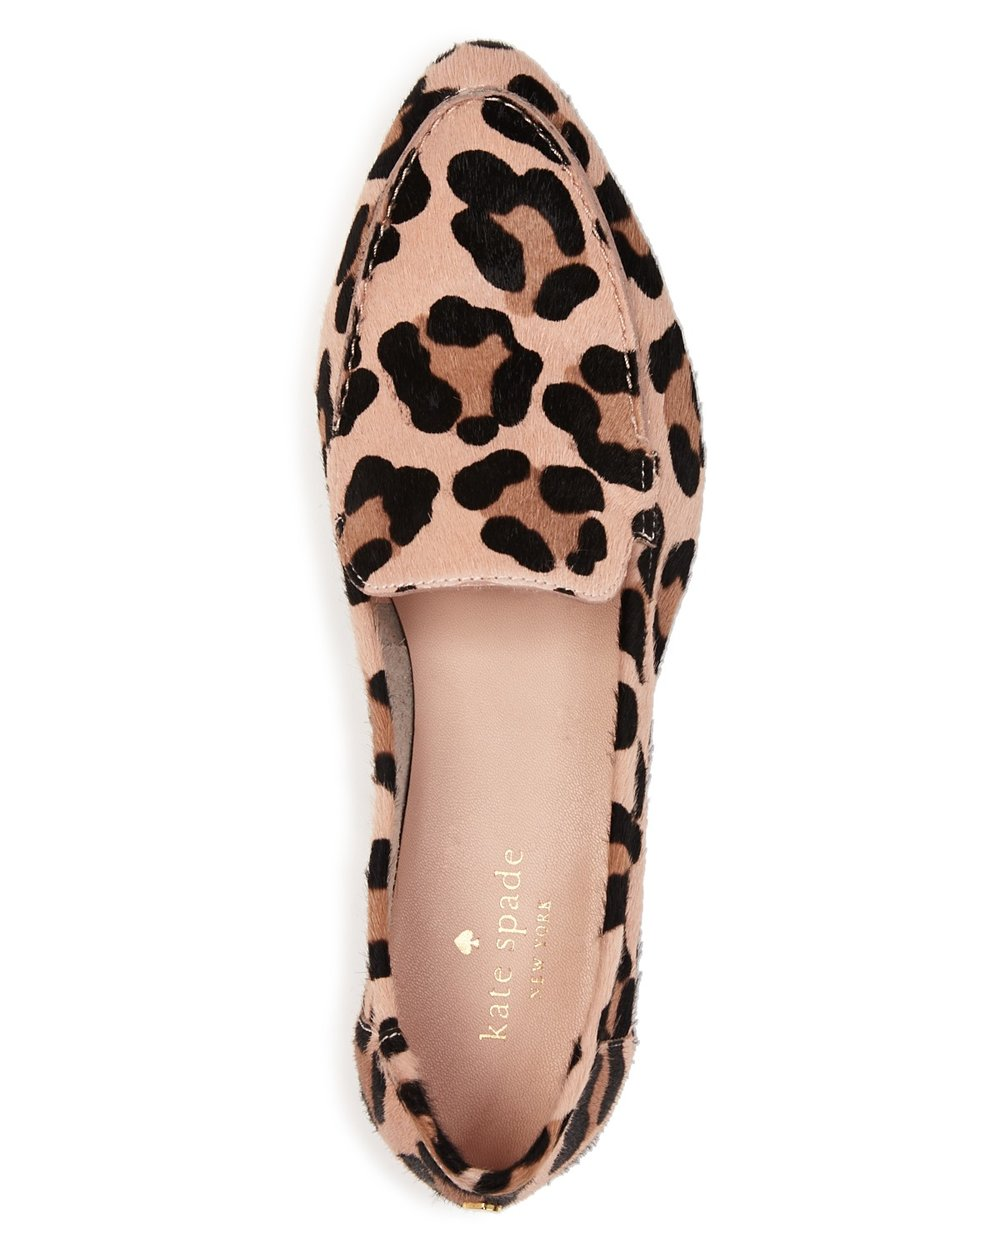 SIMILAR: KATE SPADE NY |  CARIMA LEOPARD PRINT CALF HAIR LOAFERS